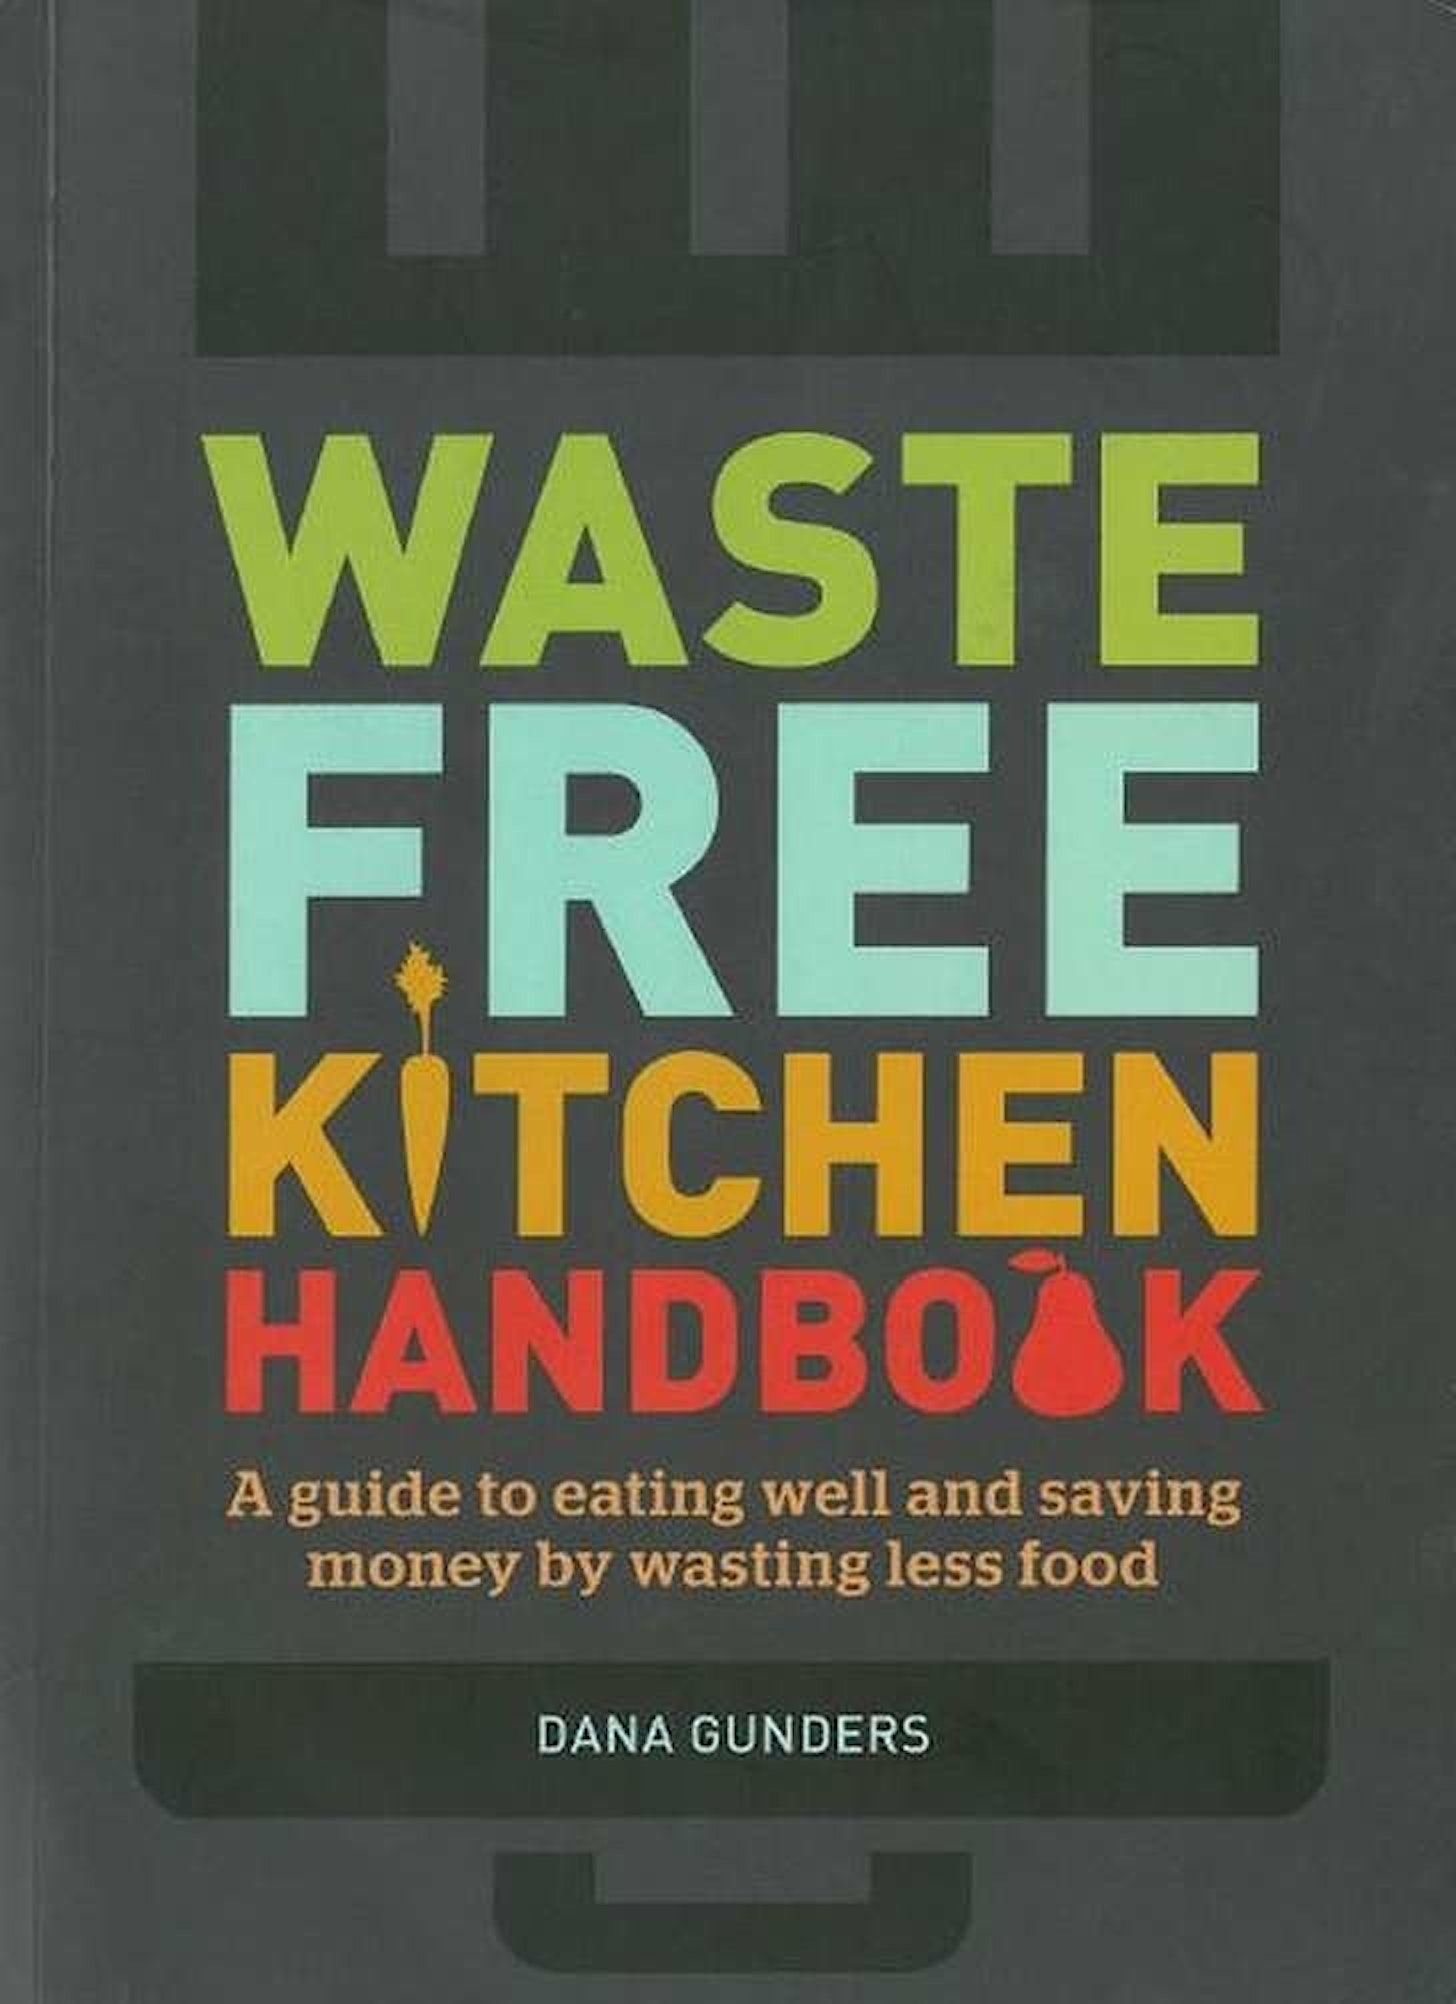 2016 06 book waste free kitchen book 7952c8a5 96df 4622 802c da8d8d5dd5dc